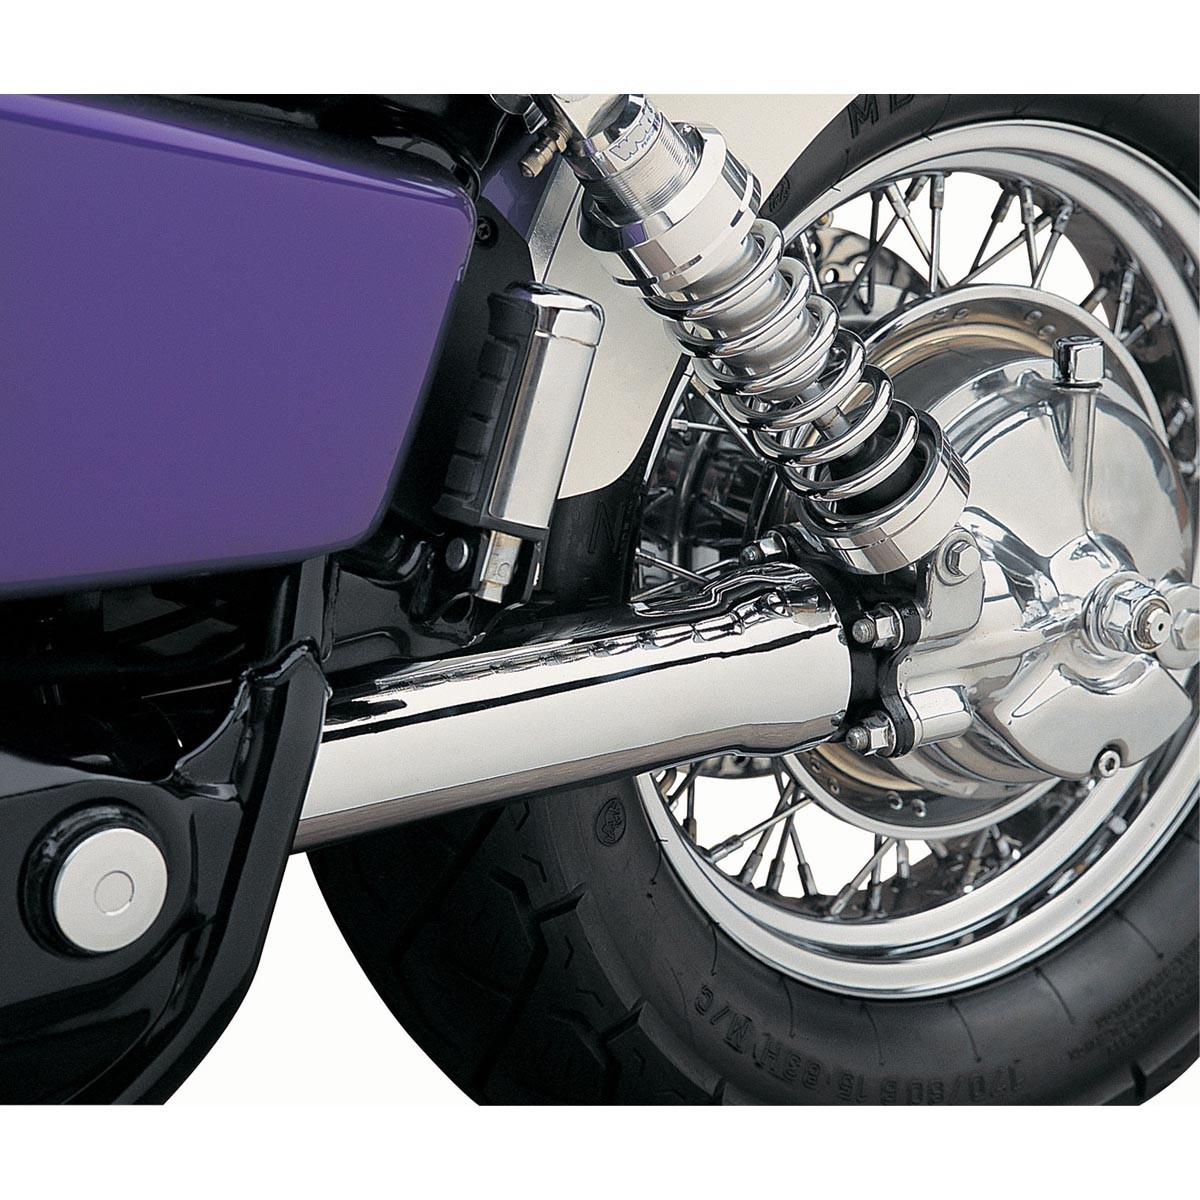 Get it delivered to your door - COBRA Driveshaft Cover - 06-0845 - 1300 (EGP)